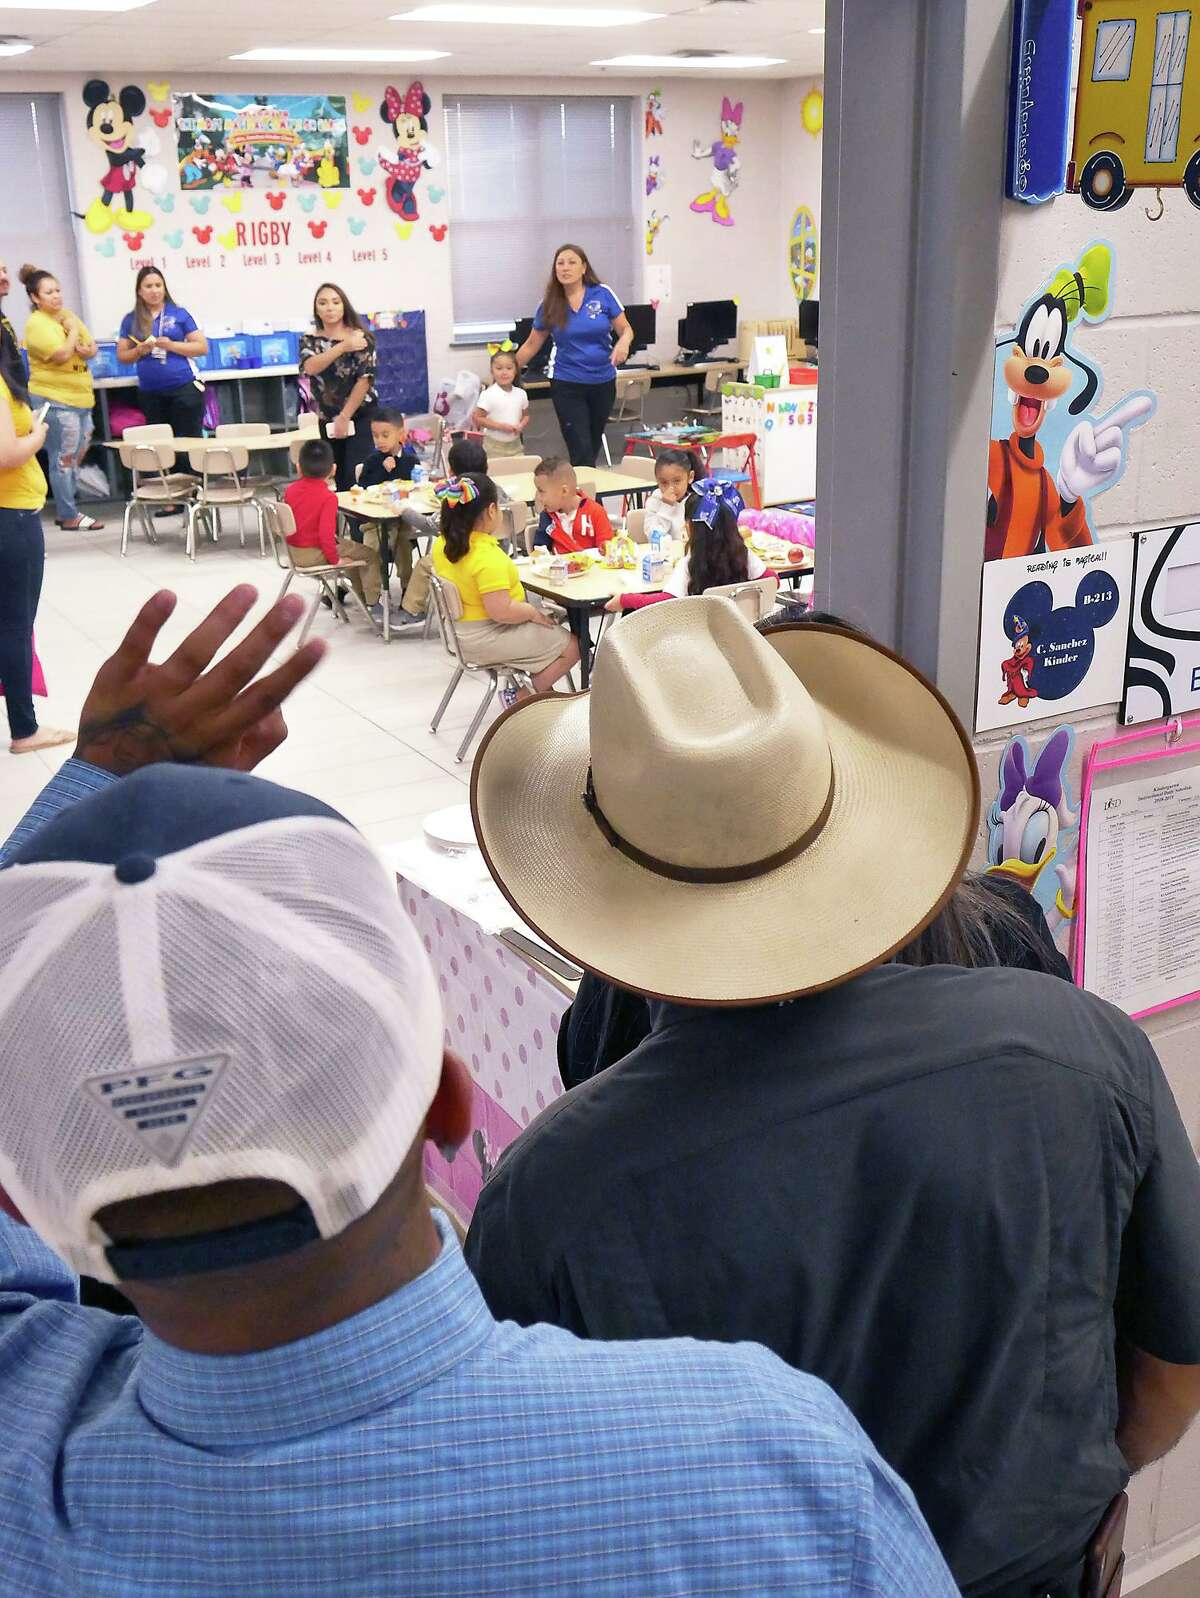 Family members wave and peek into the classroom after dropping off a student on the first day of the 2019-2020 school year at Zachry Elementary Monday, August 12, 2019.